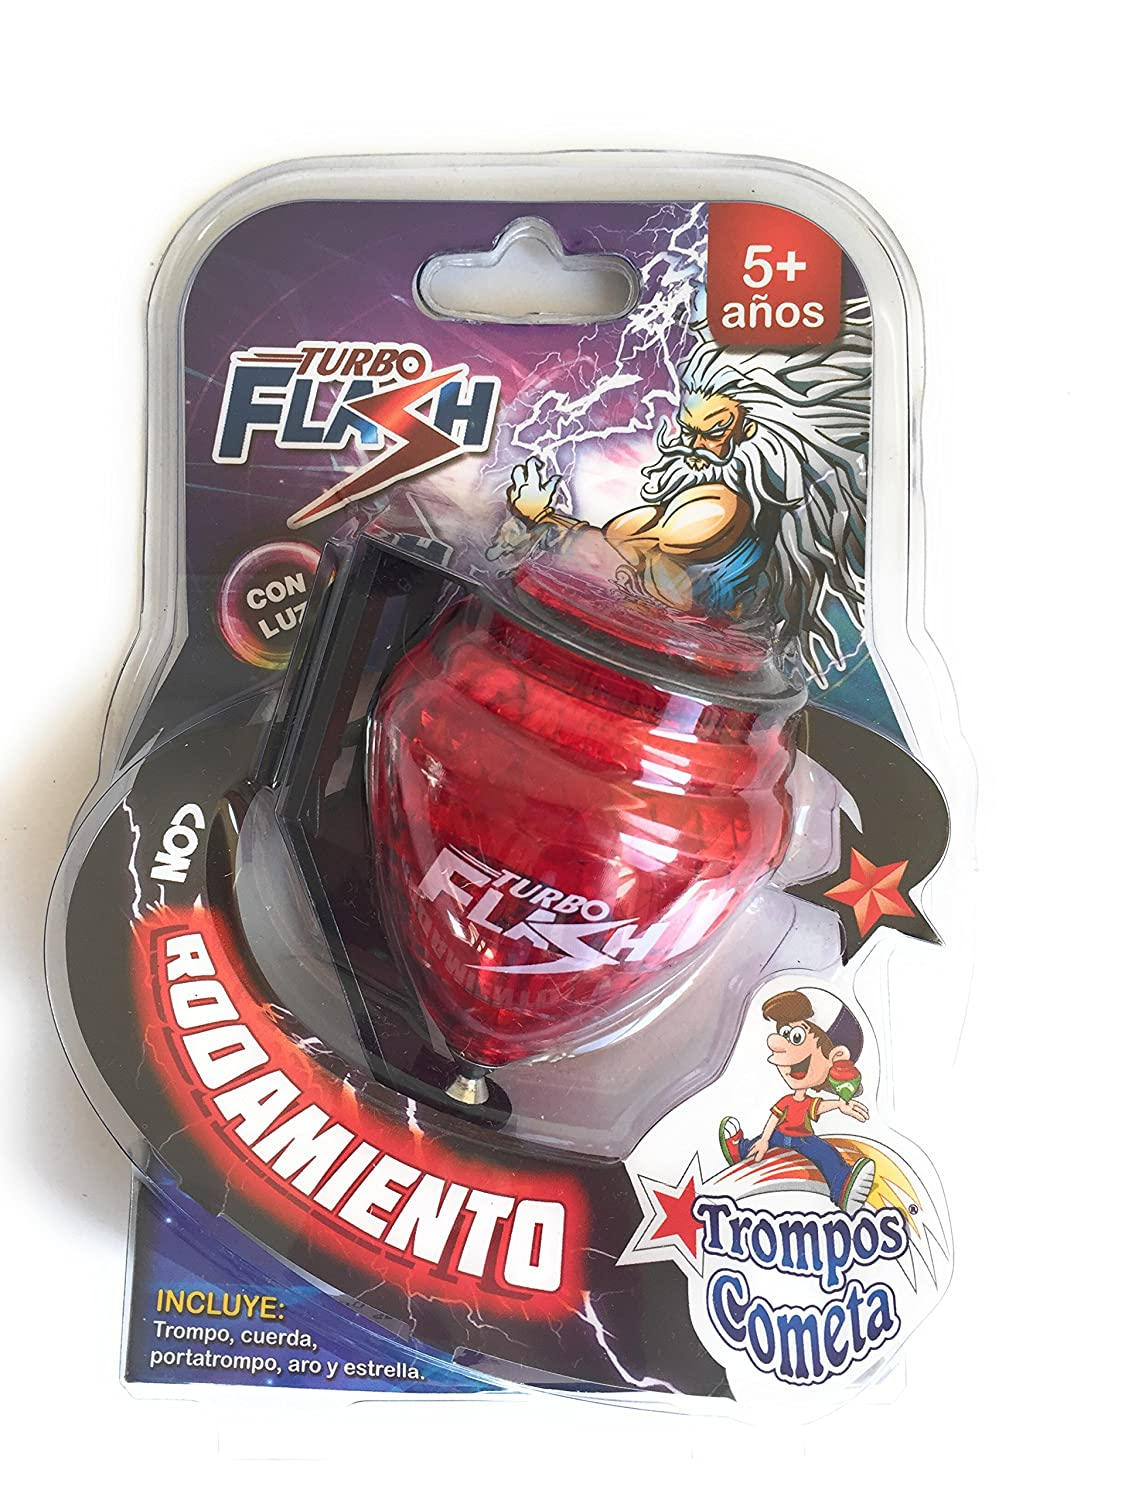 Grahmart Deluxe Turbo Flash Trompo Mexicano Durable Plastic Spin Tops Metal Tip LED Light